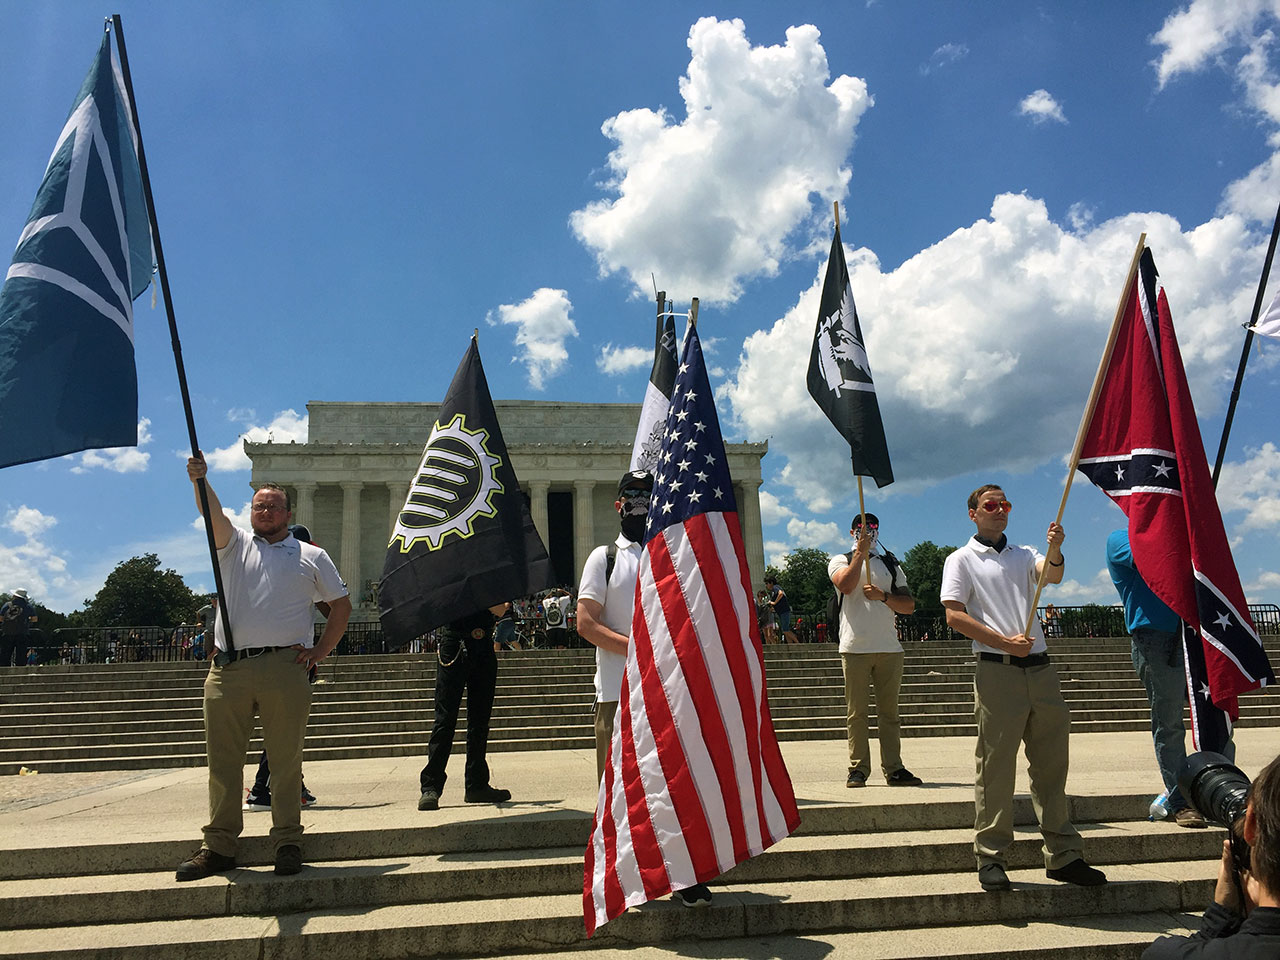 Flags for the Tradtionalist Workers Party, Identity Evropa, Vanguard America raised high alongside the Confederate battle flag outside the Lincoln Memorial.